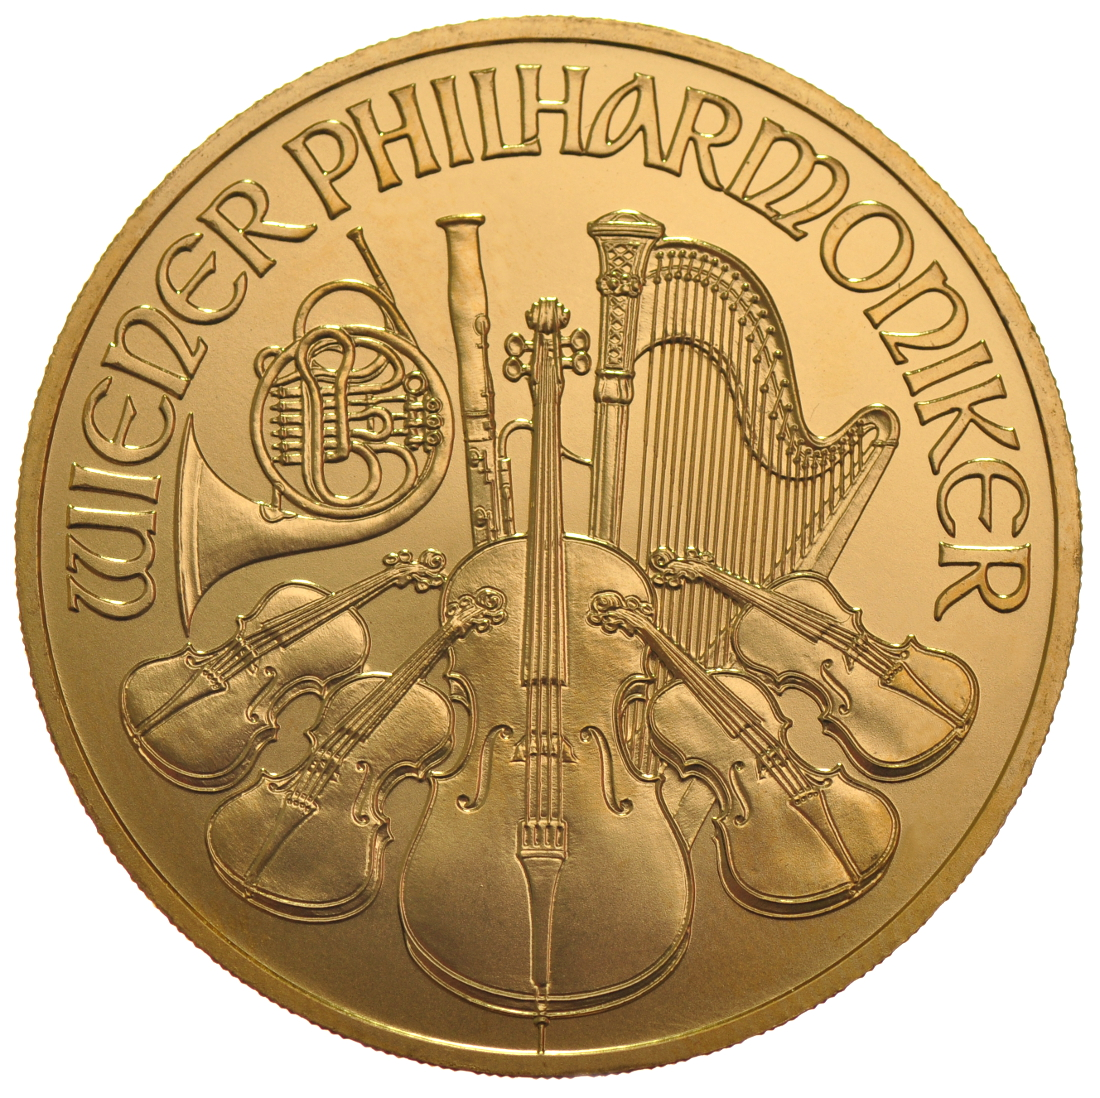 1oz Austrian Gold Philharmonic Coin Best Value